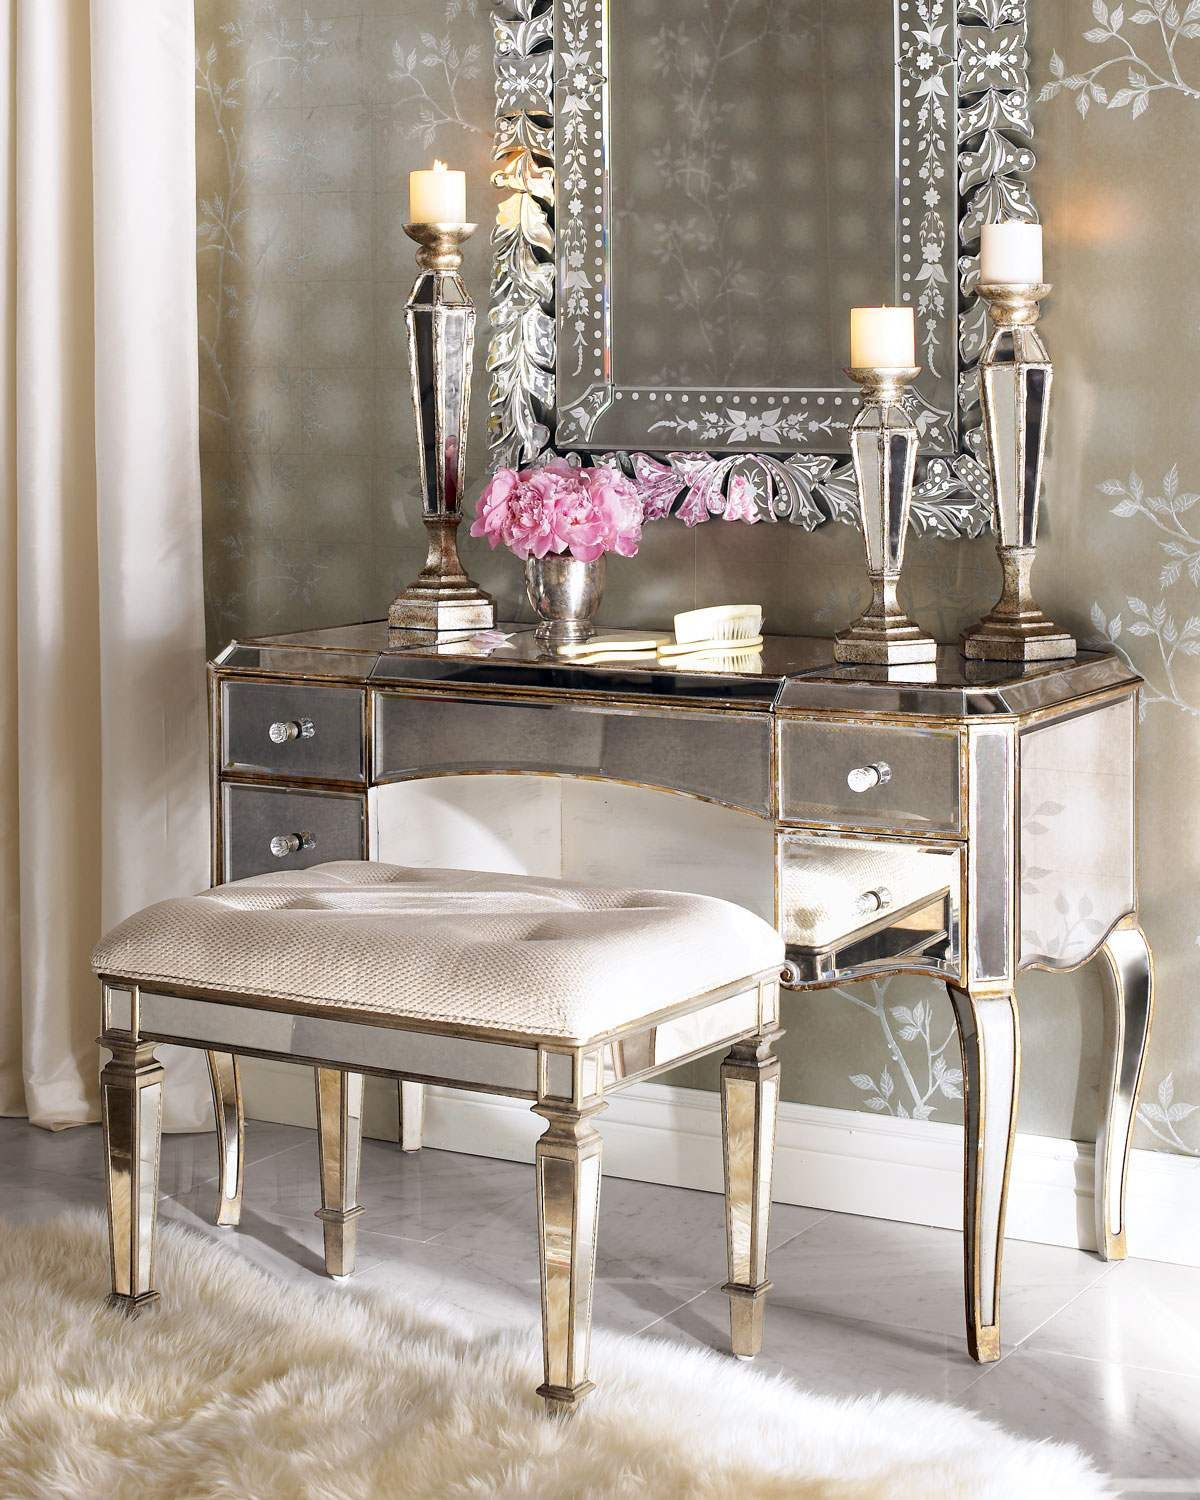 Claire mirrored vanity vanity mirror co visit us for the entire claire mirrored vanity vanity mirror co visit us for the entire source of glamour geotapseo Choice Image